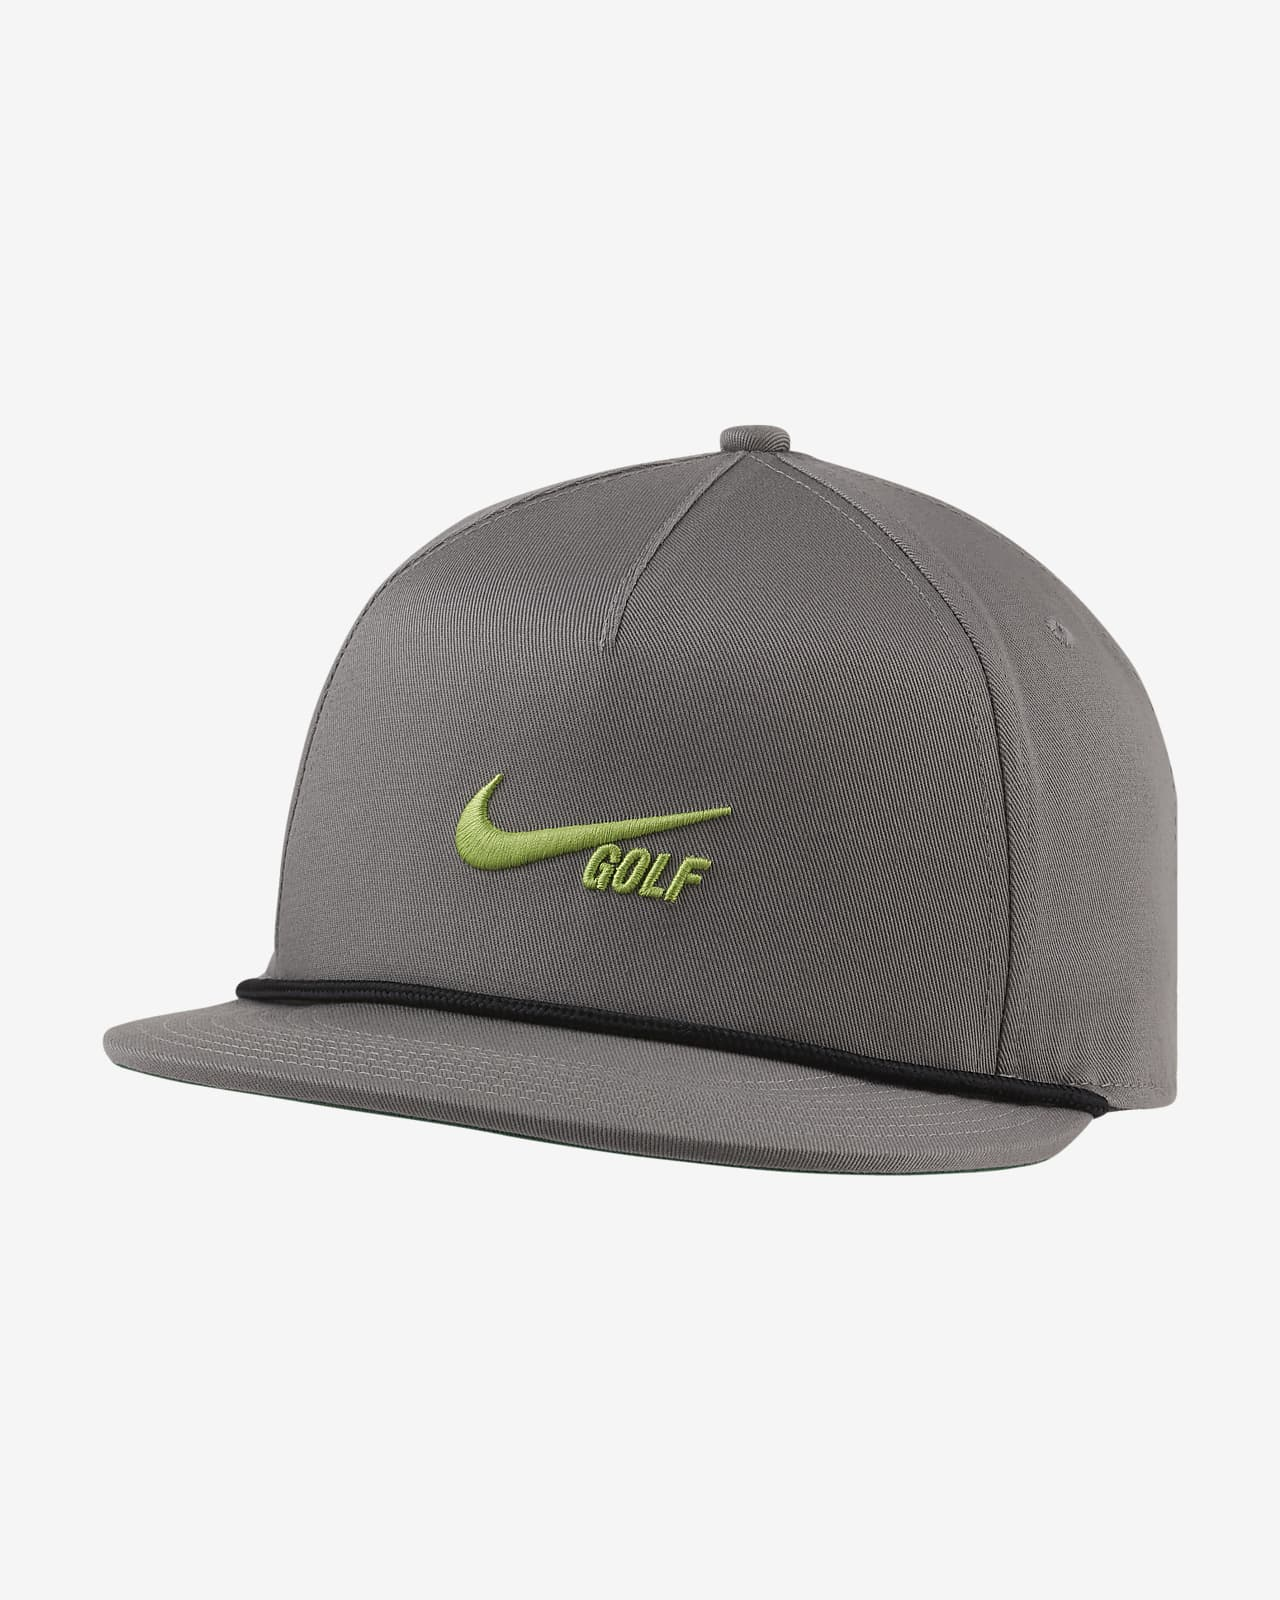 Nike AeroBill Retro72 Golf Hat